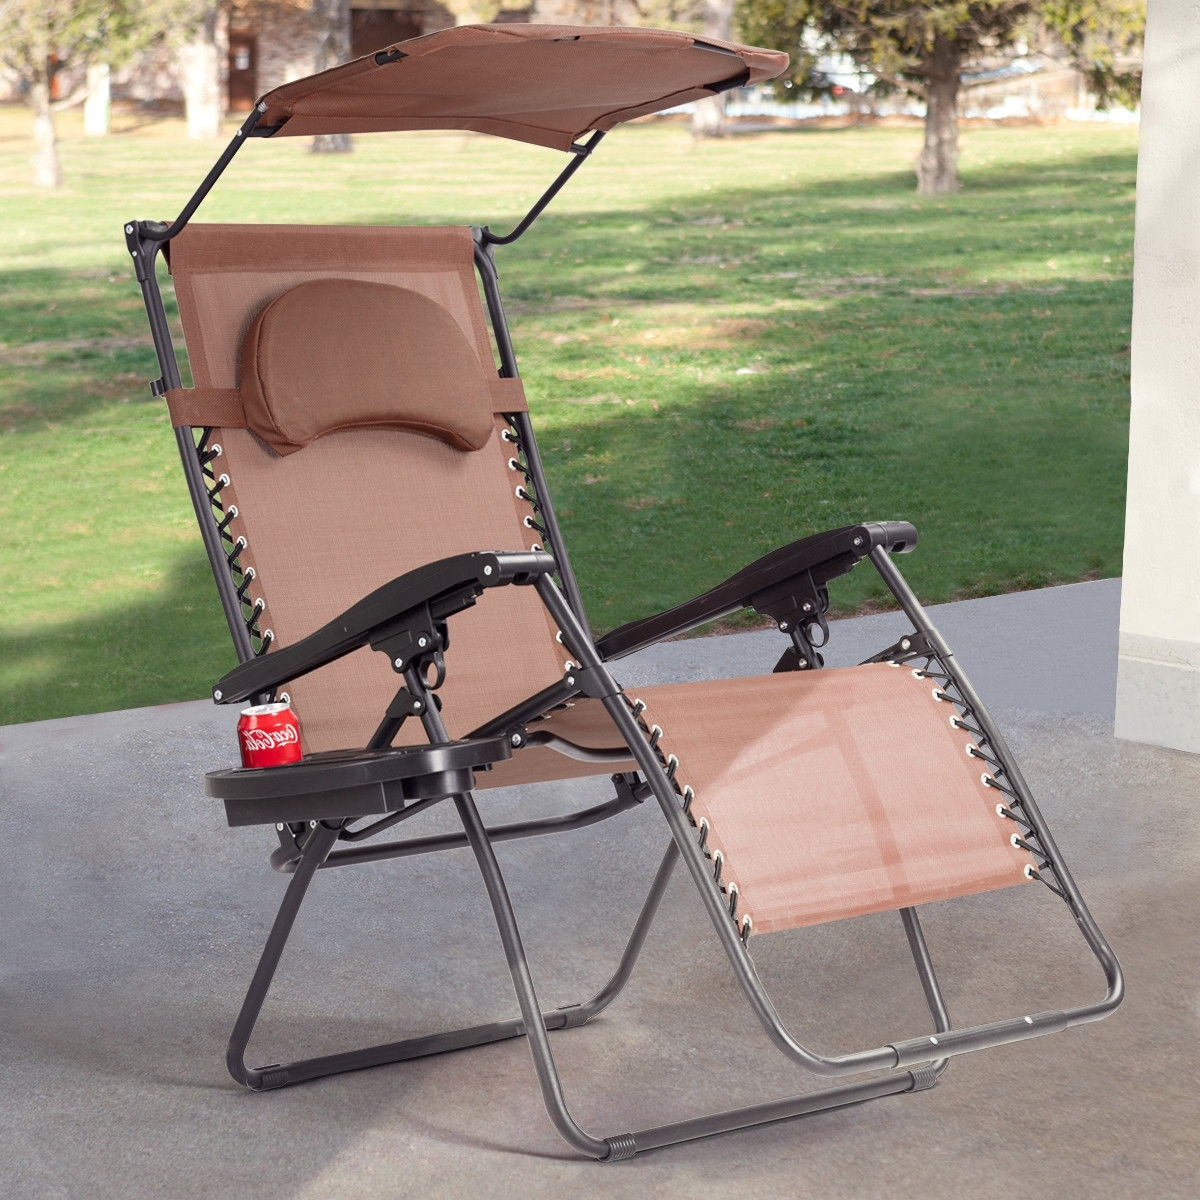 Gymax Folding Recliner Zero Gravity Lounge Chair W Shade Canopy Cup Holder Brown